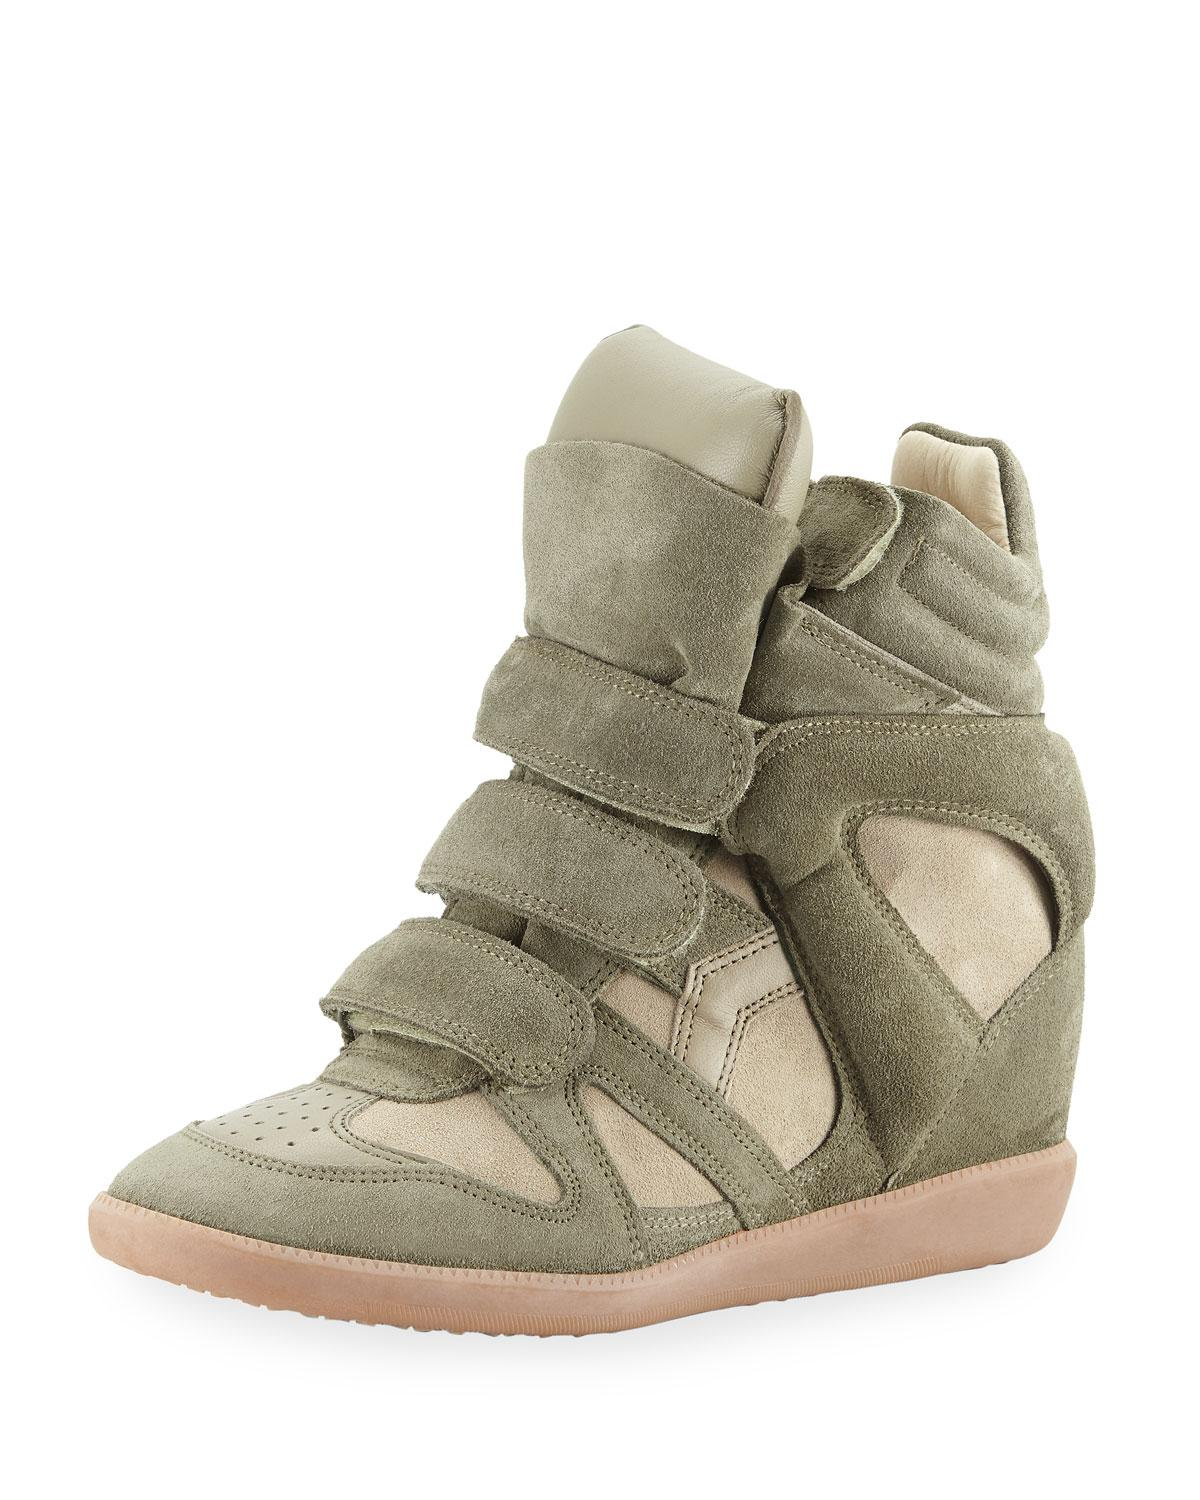 44b44bbdd1 Isabel Marant Beckett Suede Grip-Strap Wedge Sneakers In Green ...